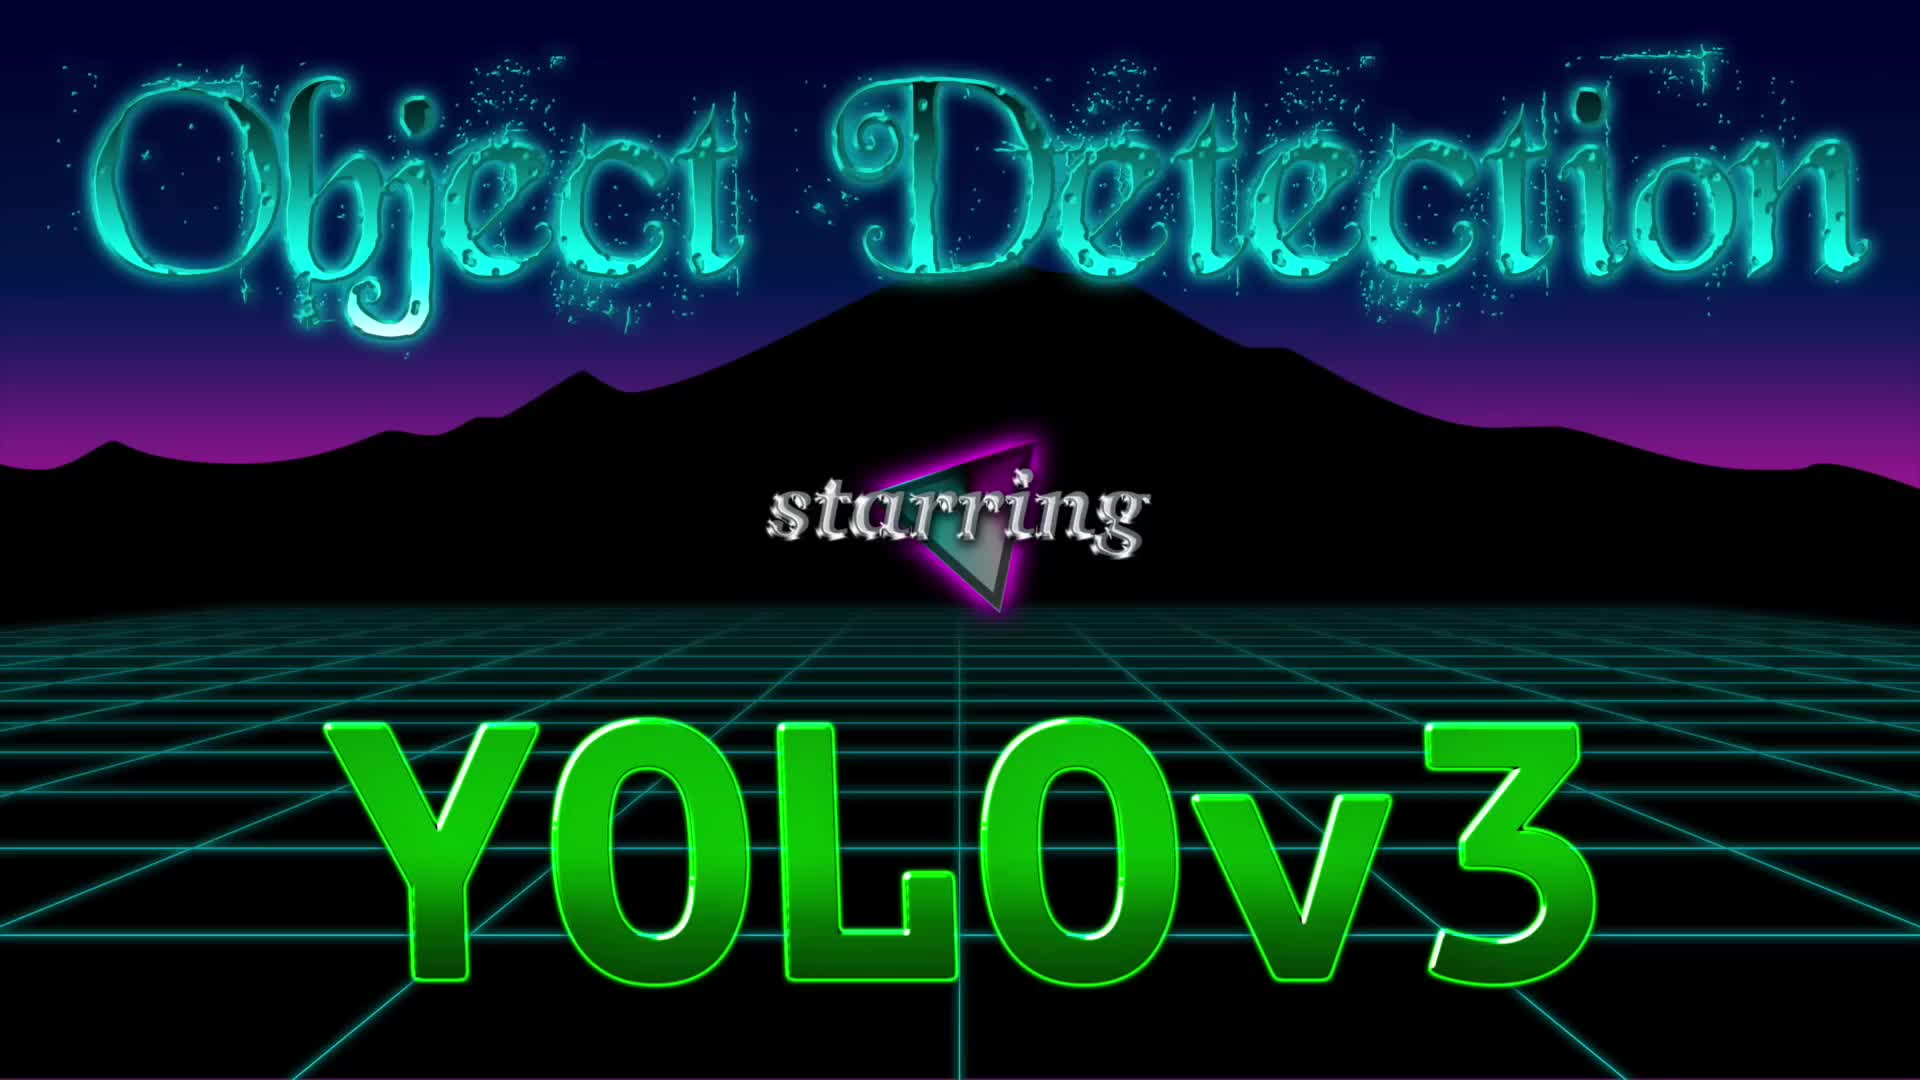 how to make yolo object detection